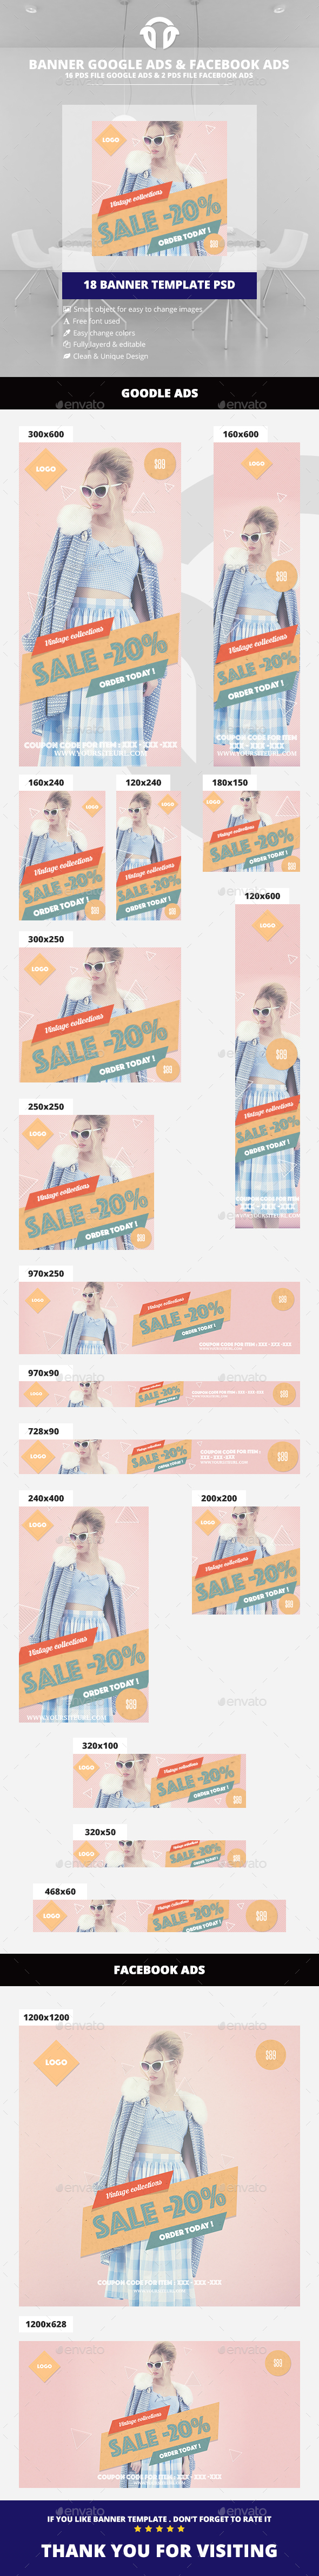 Retro / Vintage Fashion Ad - Banners & Ads Web Elements